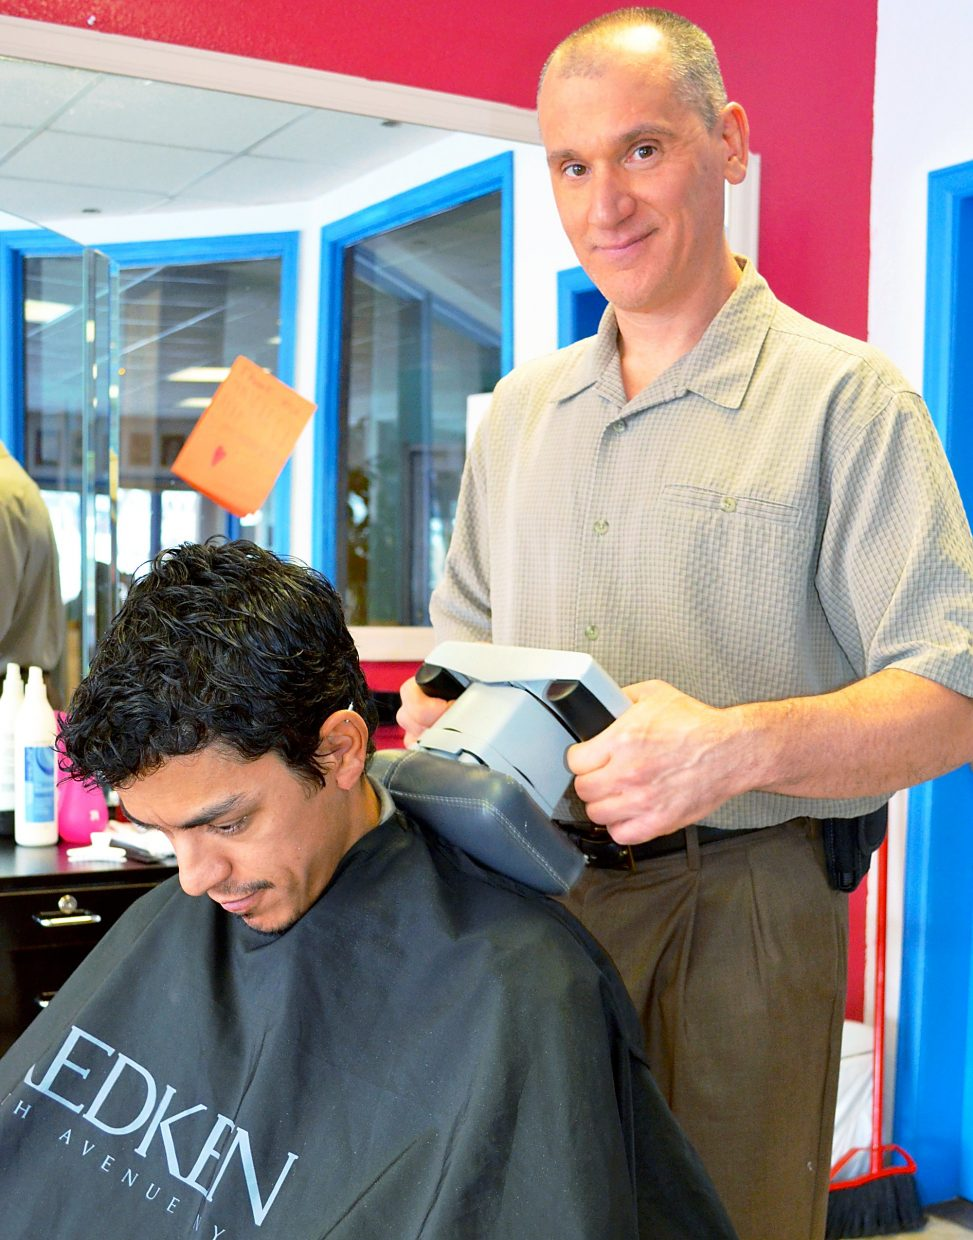 Haircuts The Way You Like It At Family Cuts In Granby Skyhinews